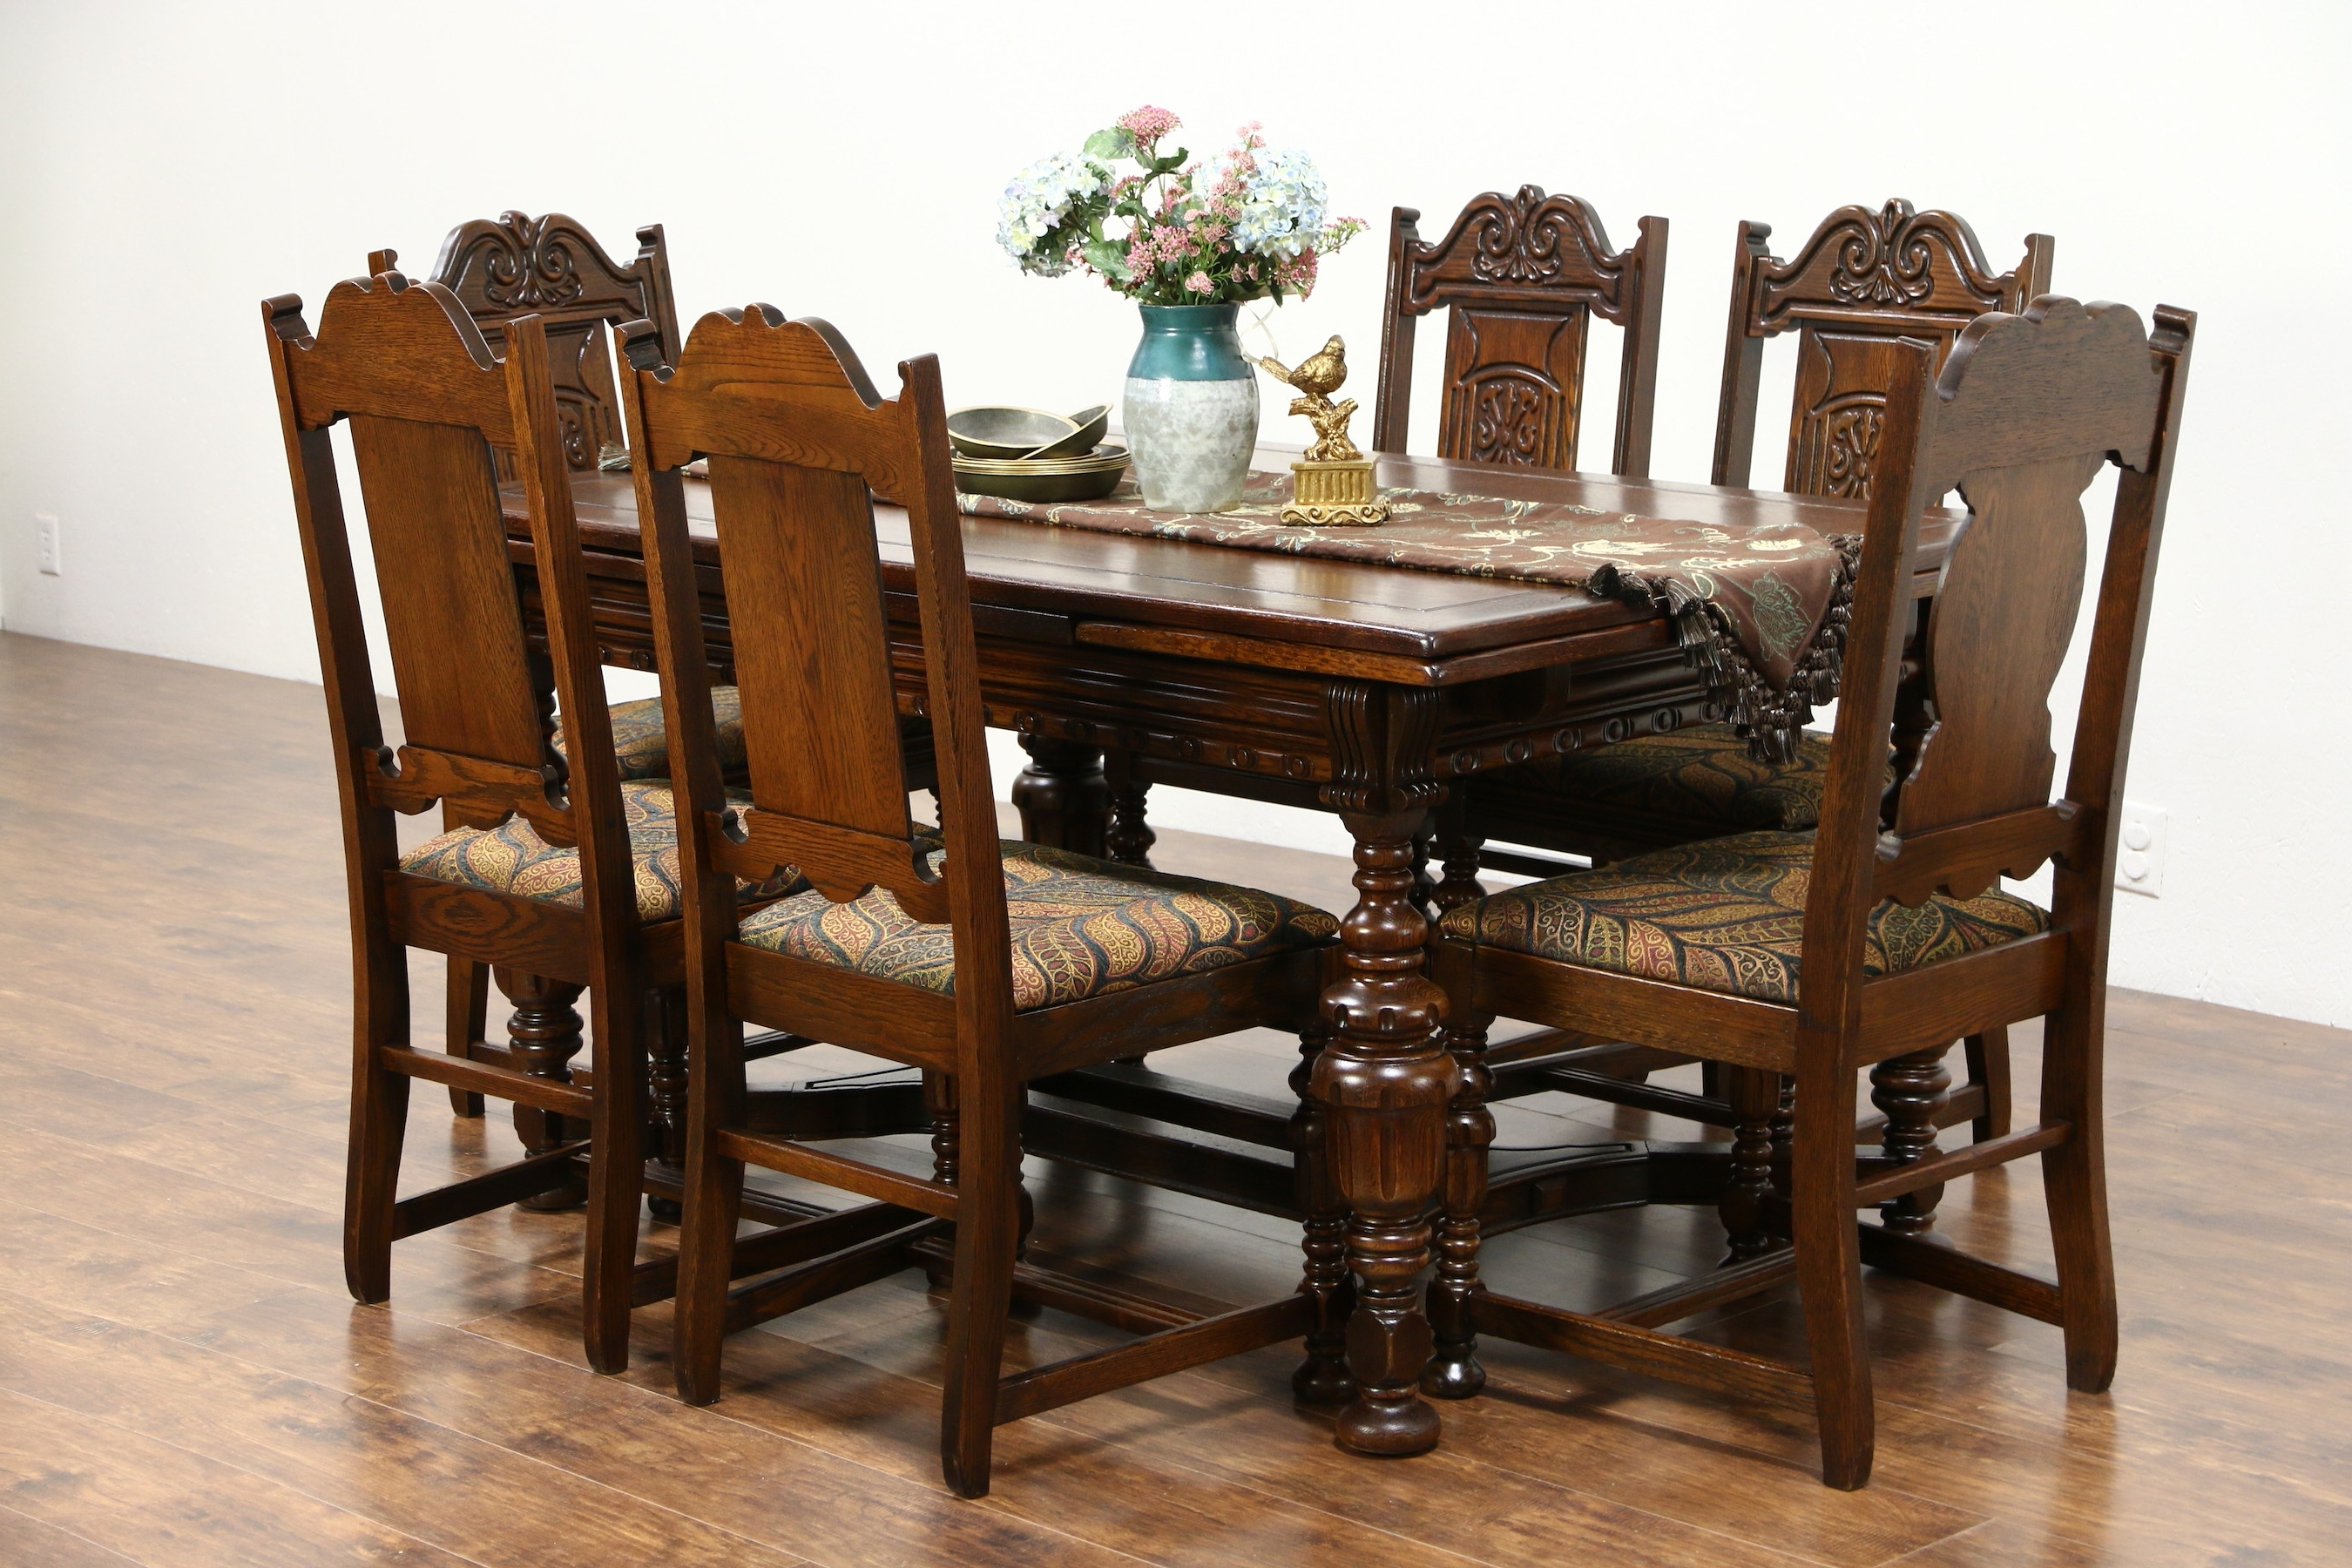 Most Popular Sold – Tudor 1925 Antique Carved Oak Dining Set, Table, 6 Chairs Intended For Dining Tables With 6 Chairs (Gallery 7 of 25)